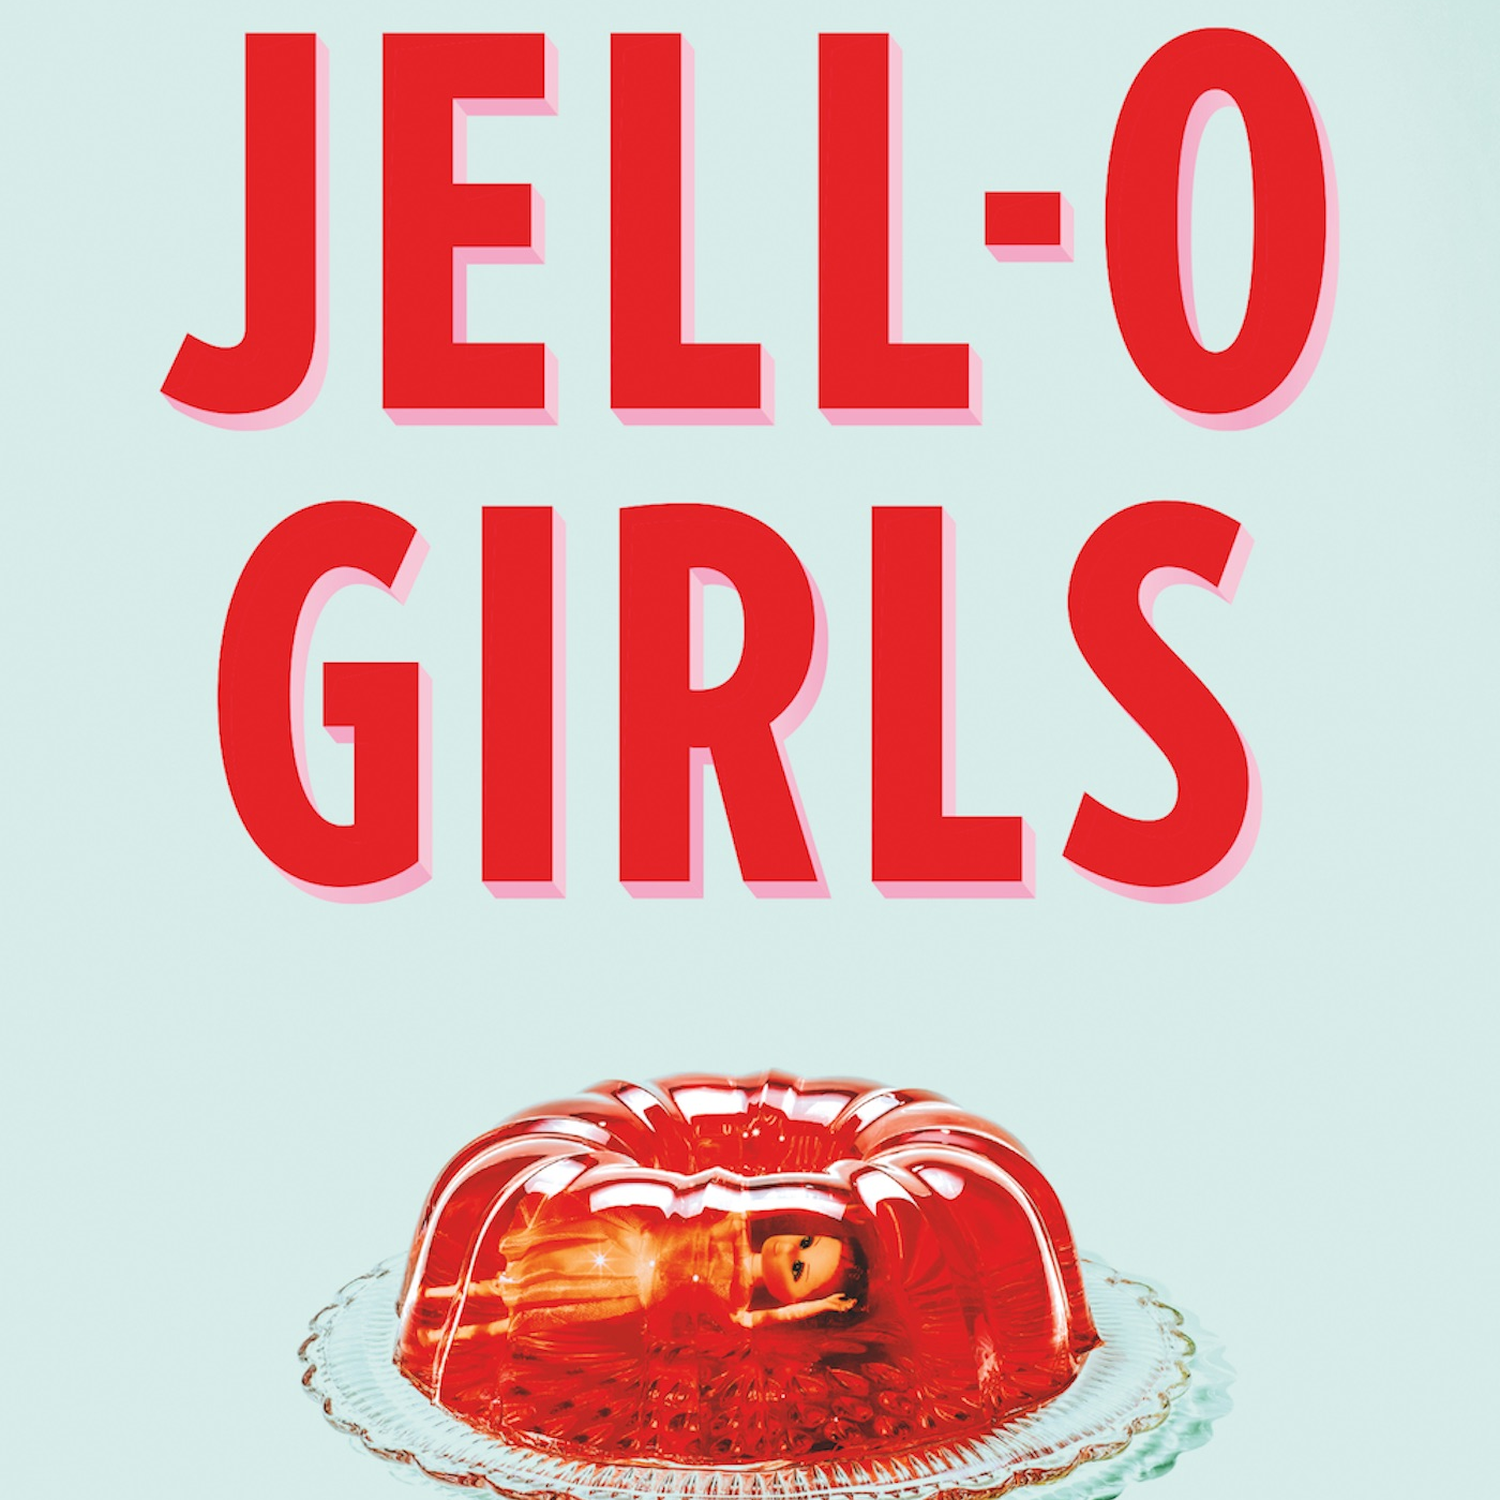 Jell-O Girls: A Conversation with Allie Rowbottom